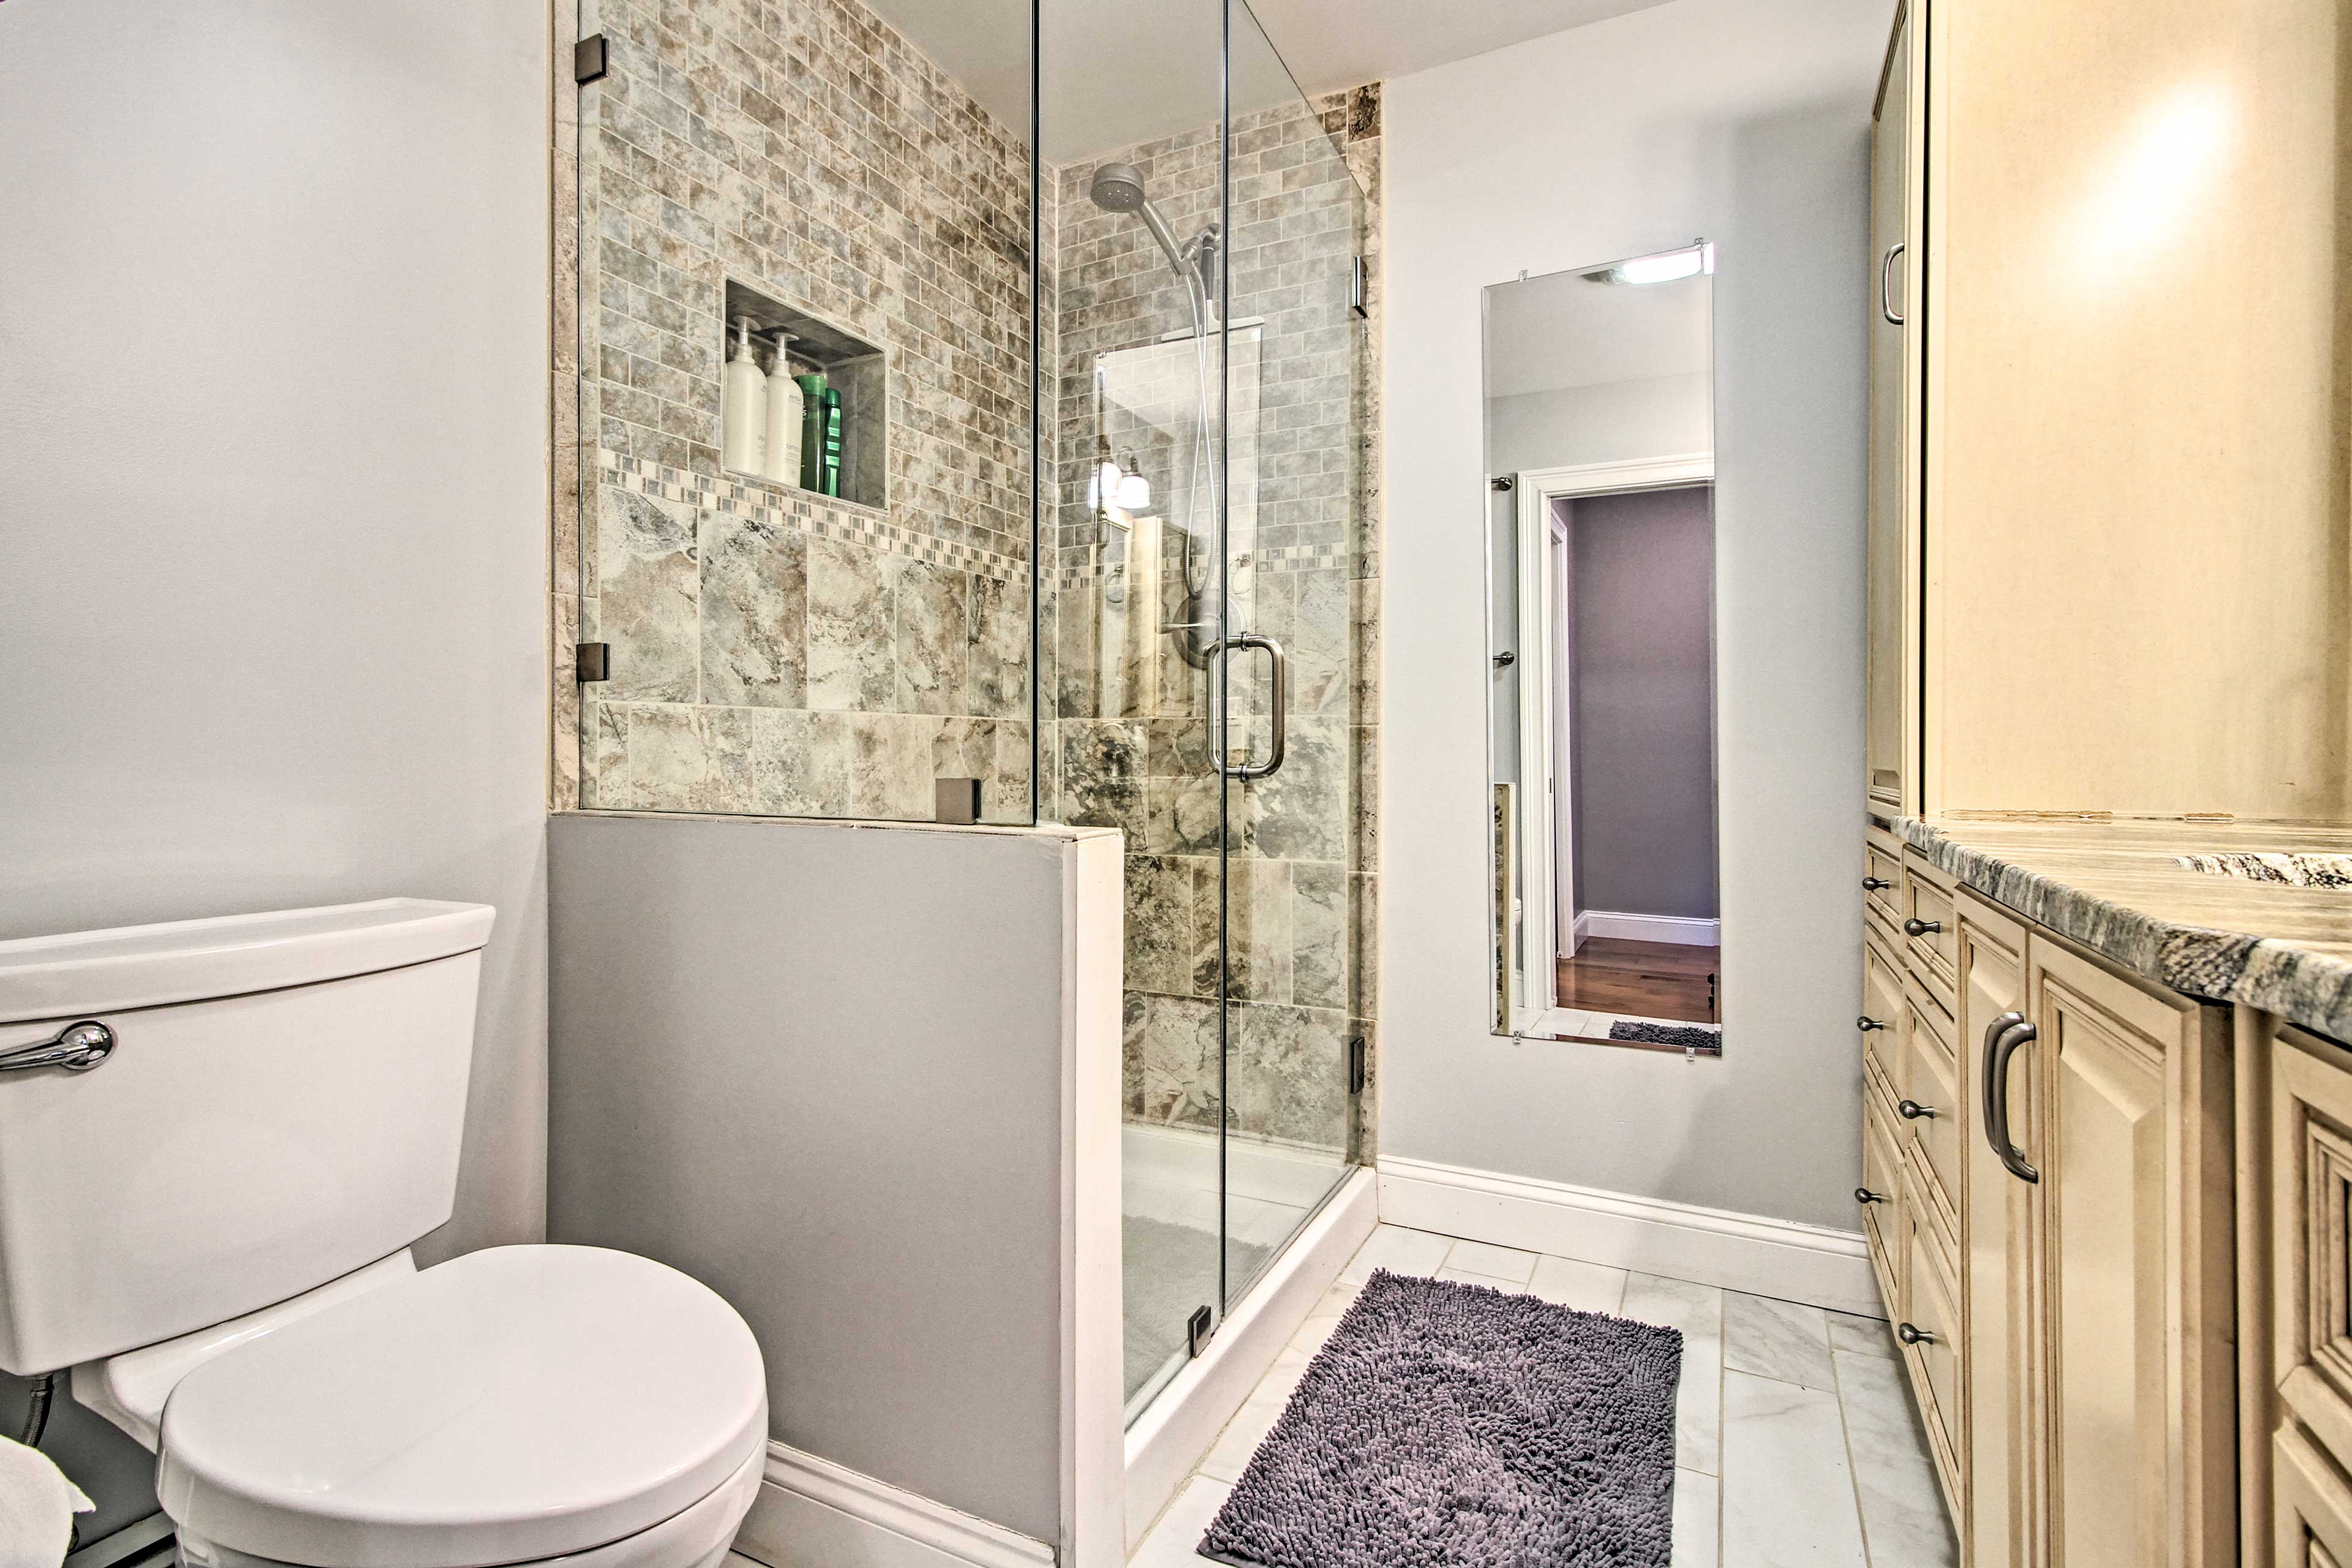 This pristine bathroom offers the perfect start to each day.